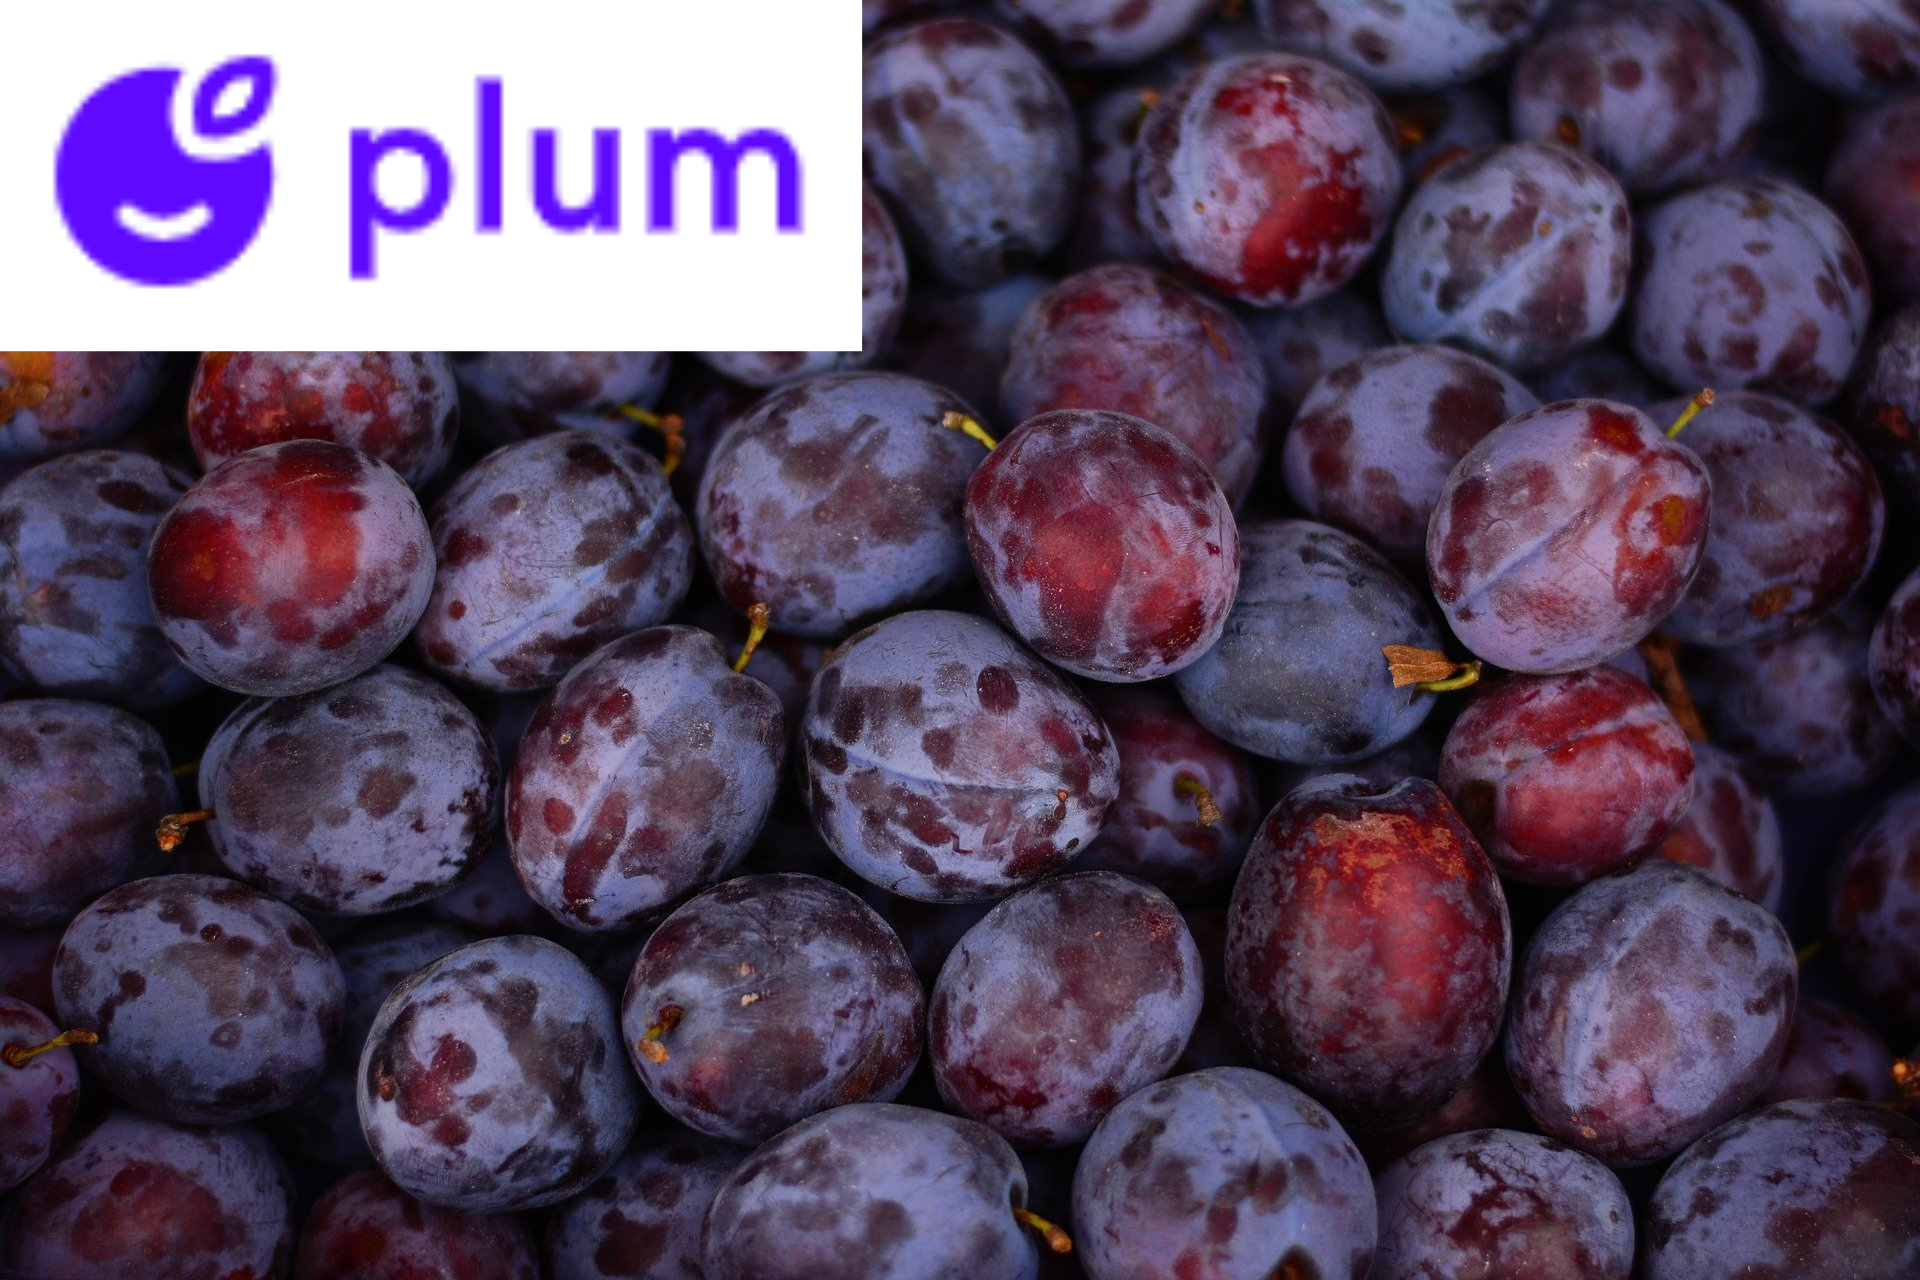 Plum review: automated savings taken from your bank account